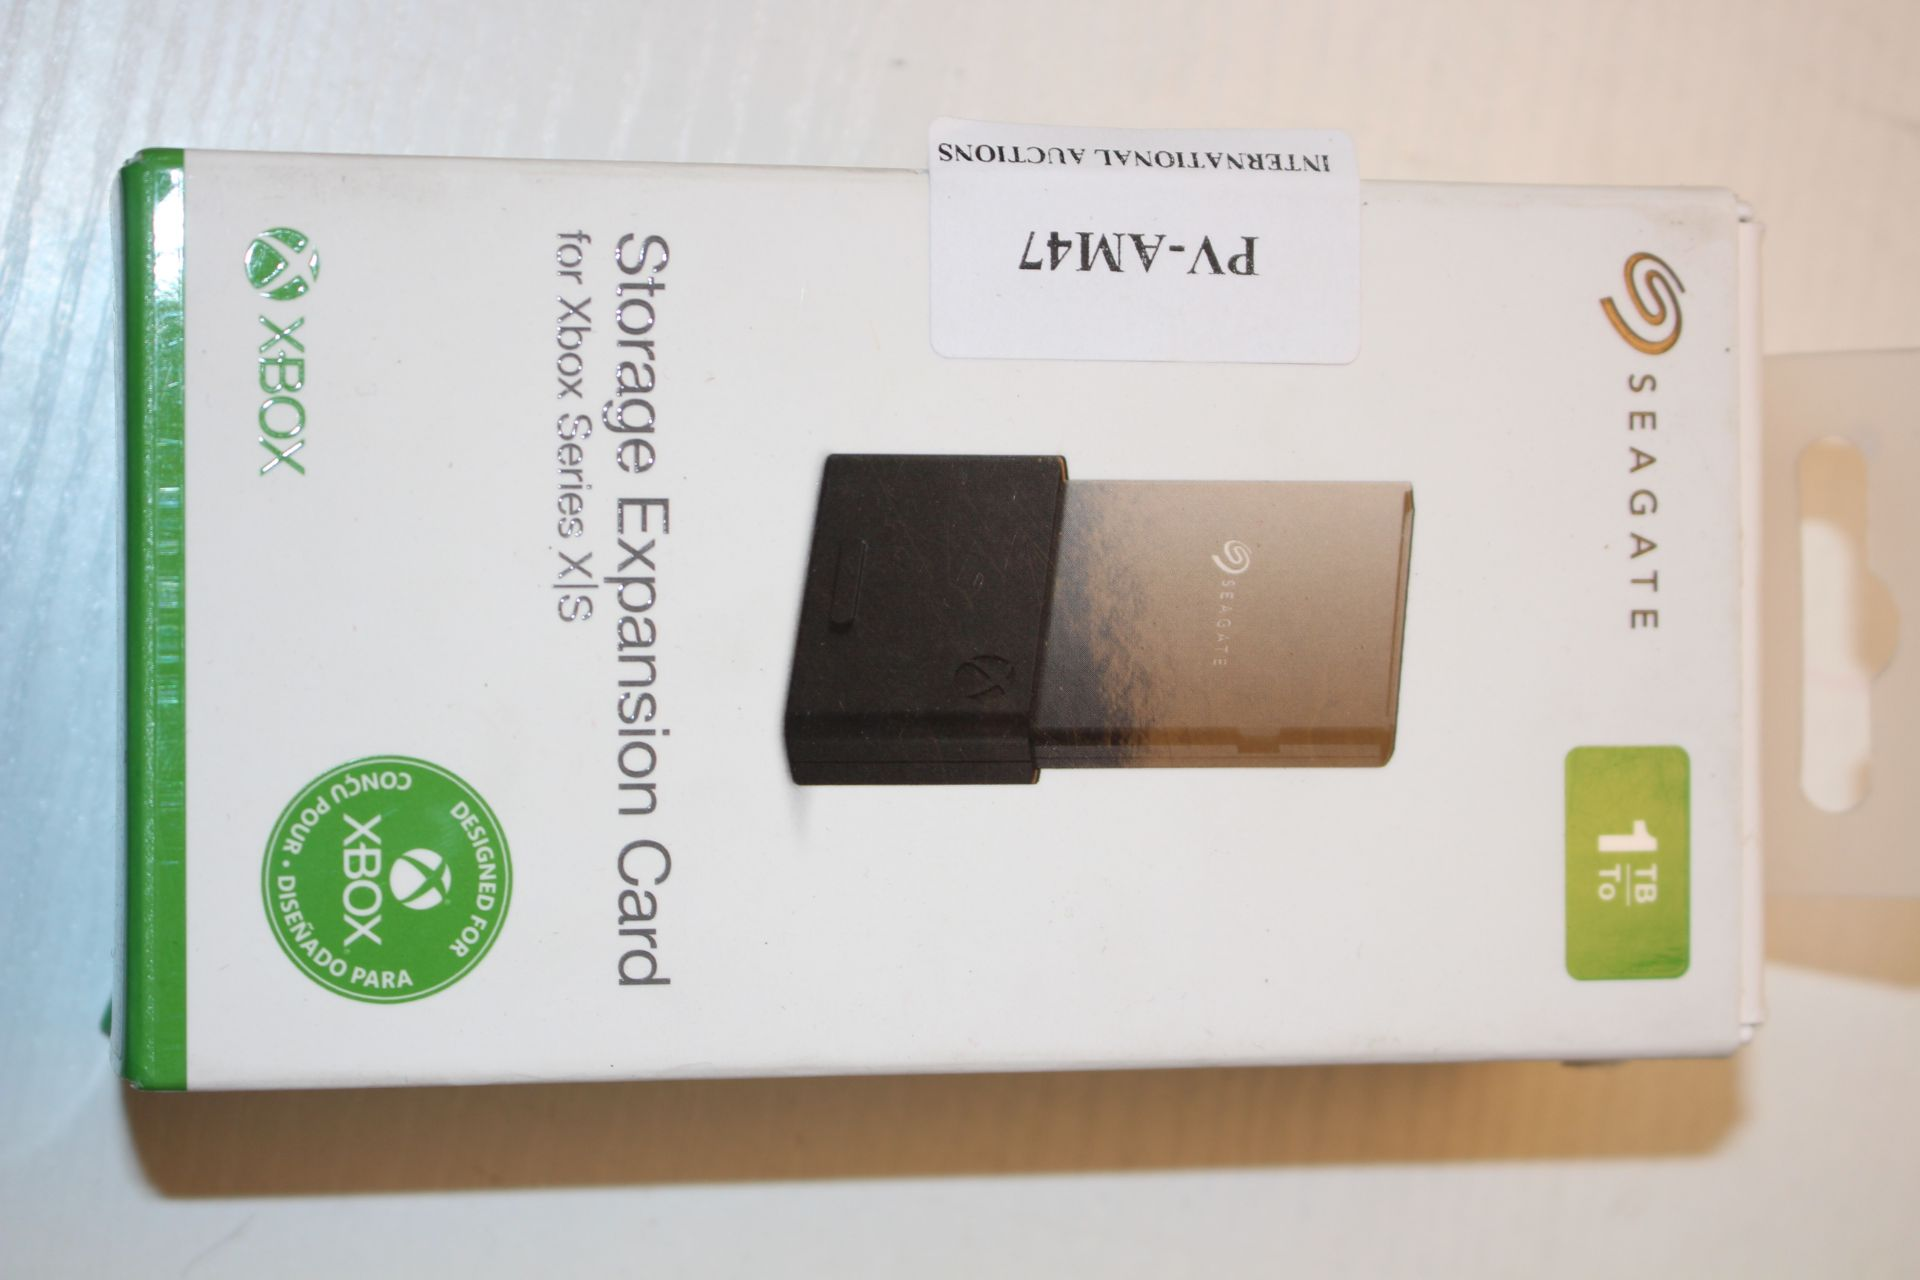 BOXED SEAGATE STORAGE EXPANSION CARD FOR XBOX SERIES X/S 1TBCondition ReportAppraisal Available on